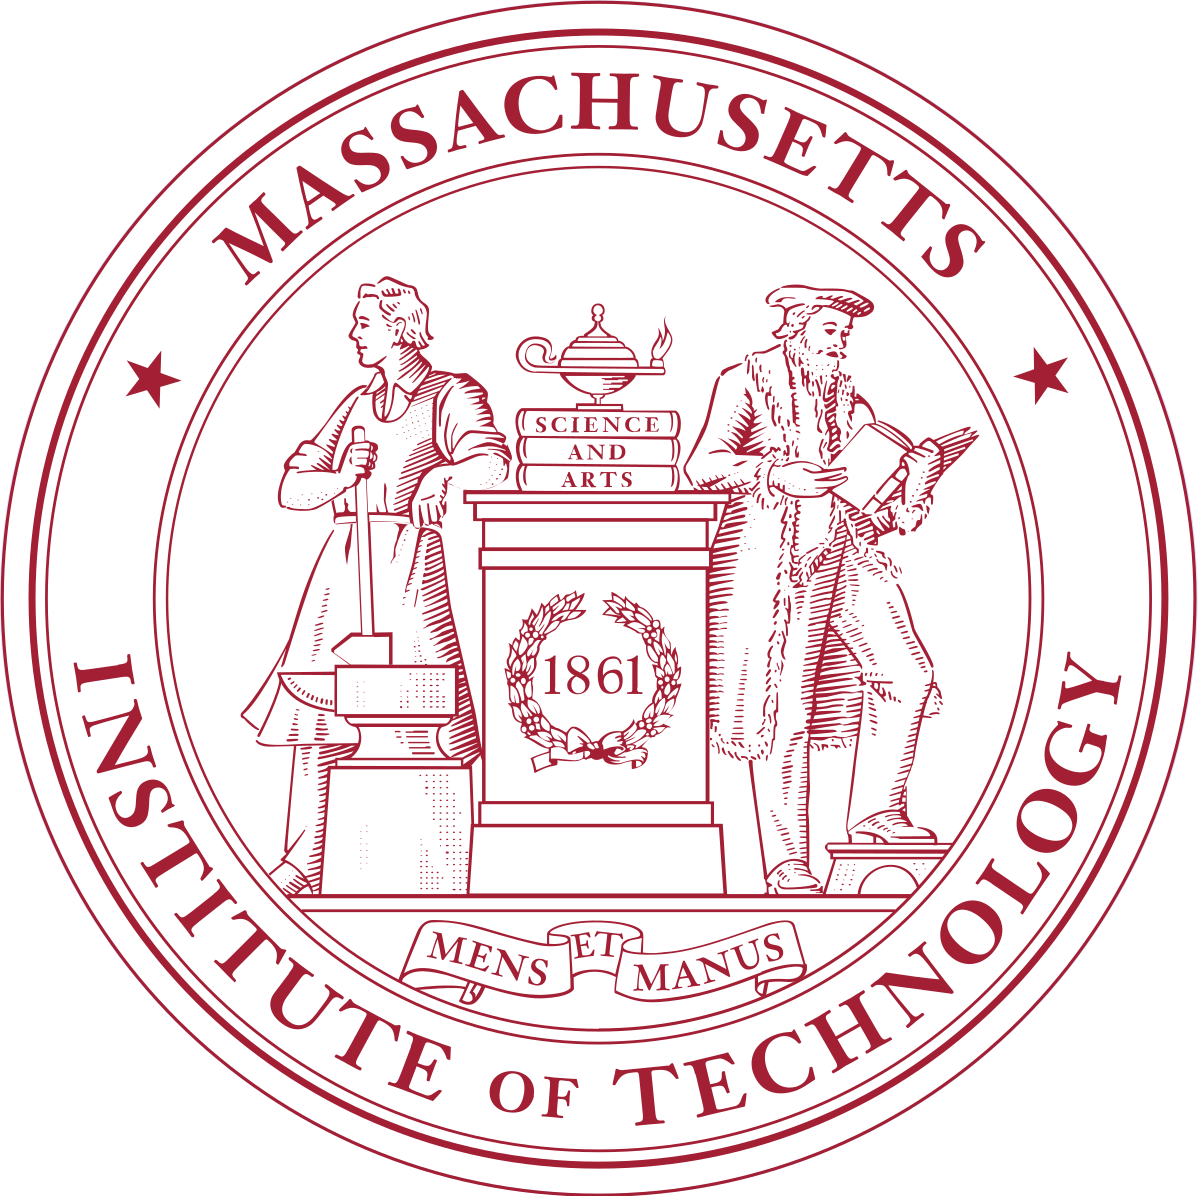 Technology clipart technology center. Massachusetts institute of wikipedia